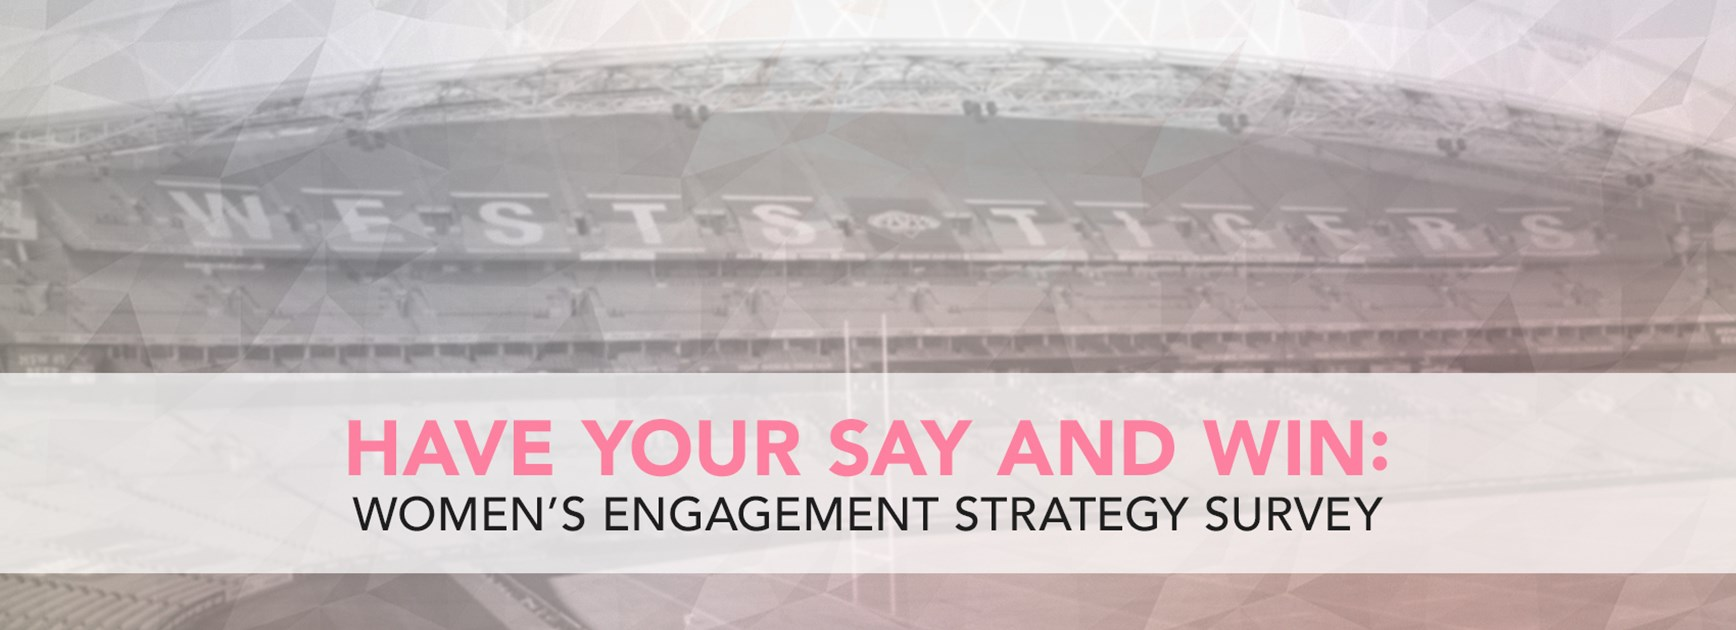 Women's Engagement Strategy Survey